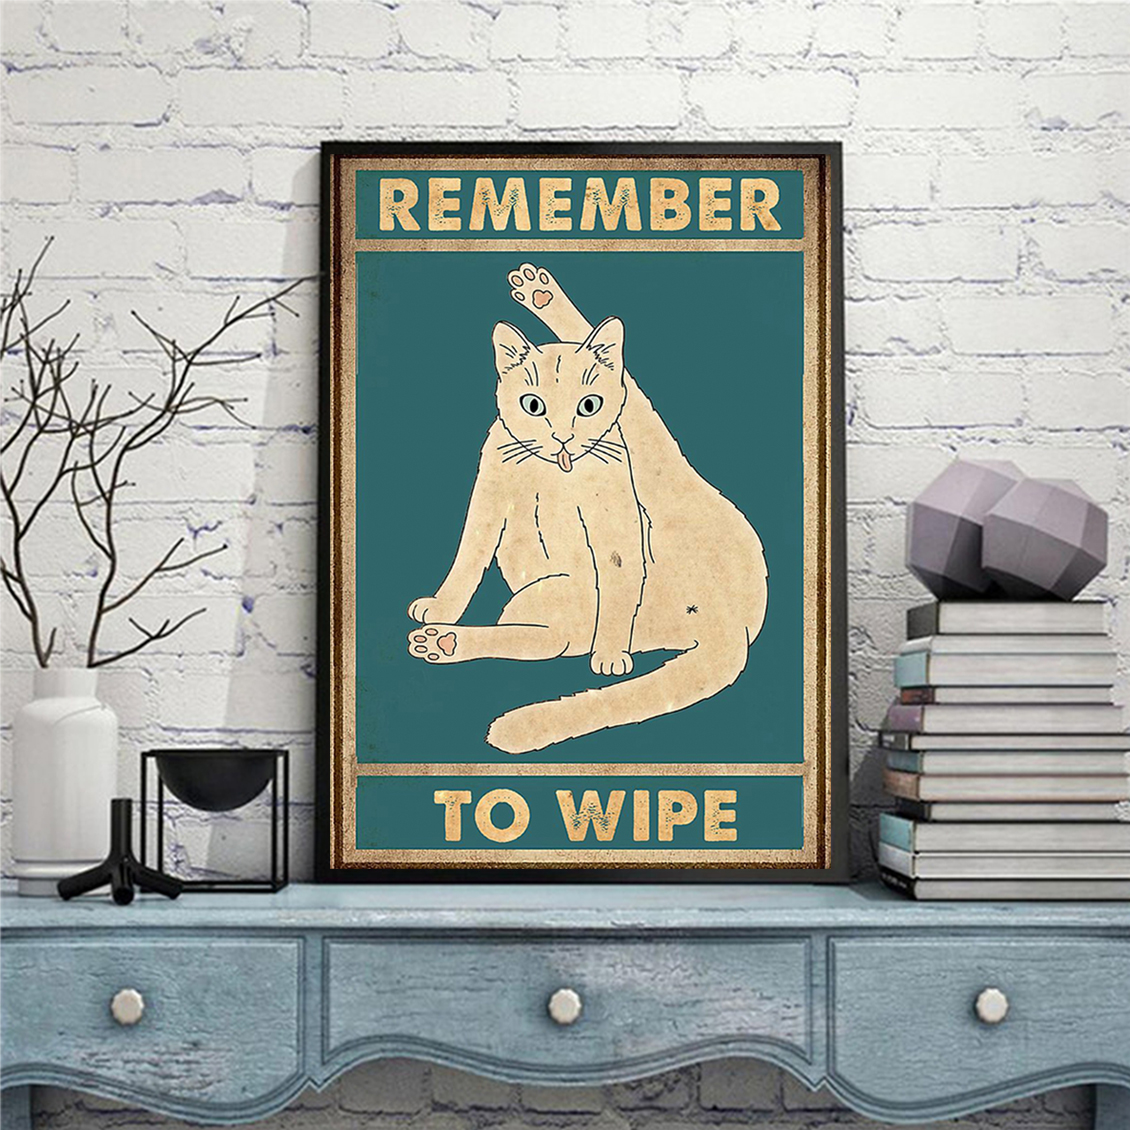 Remember to wipe cat poster A3